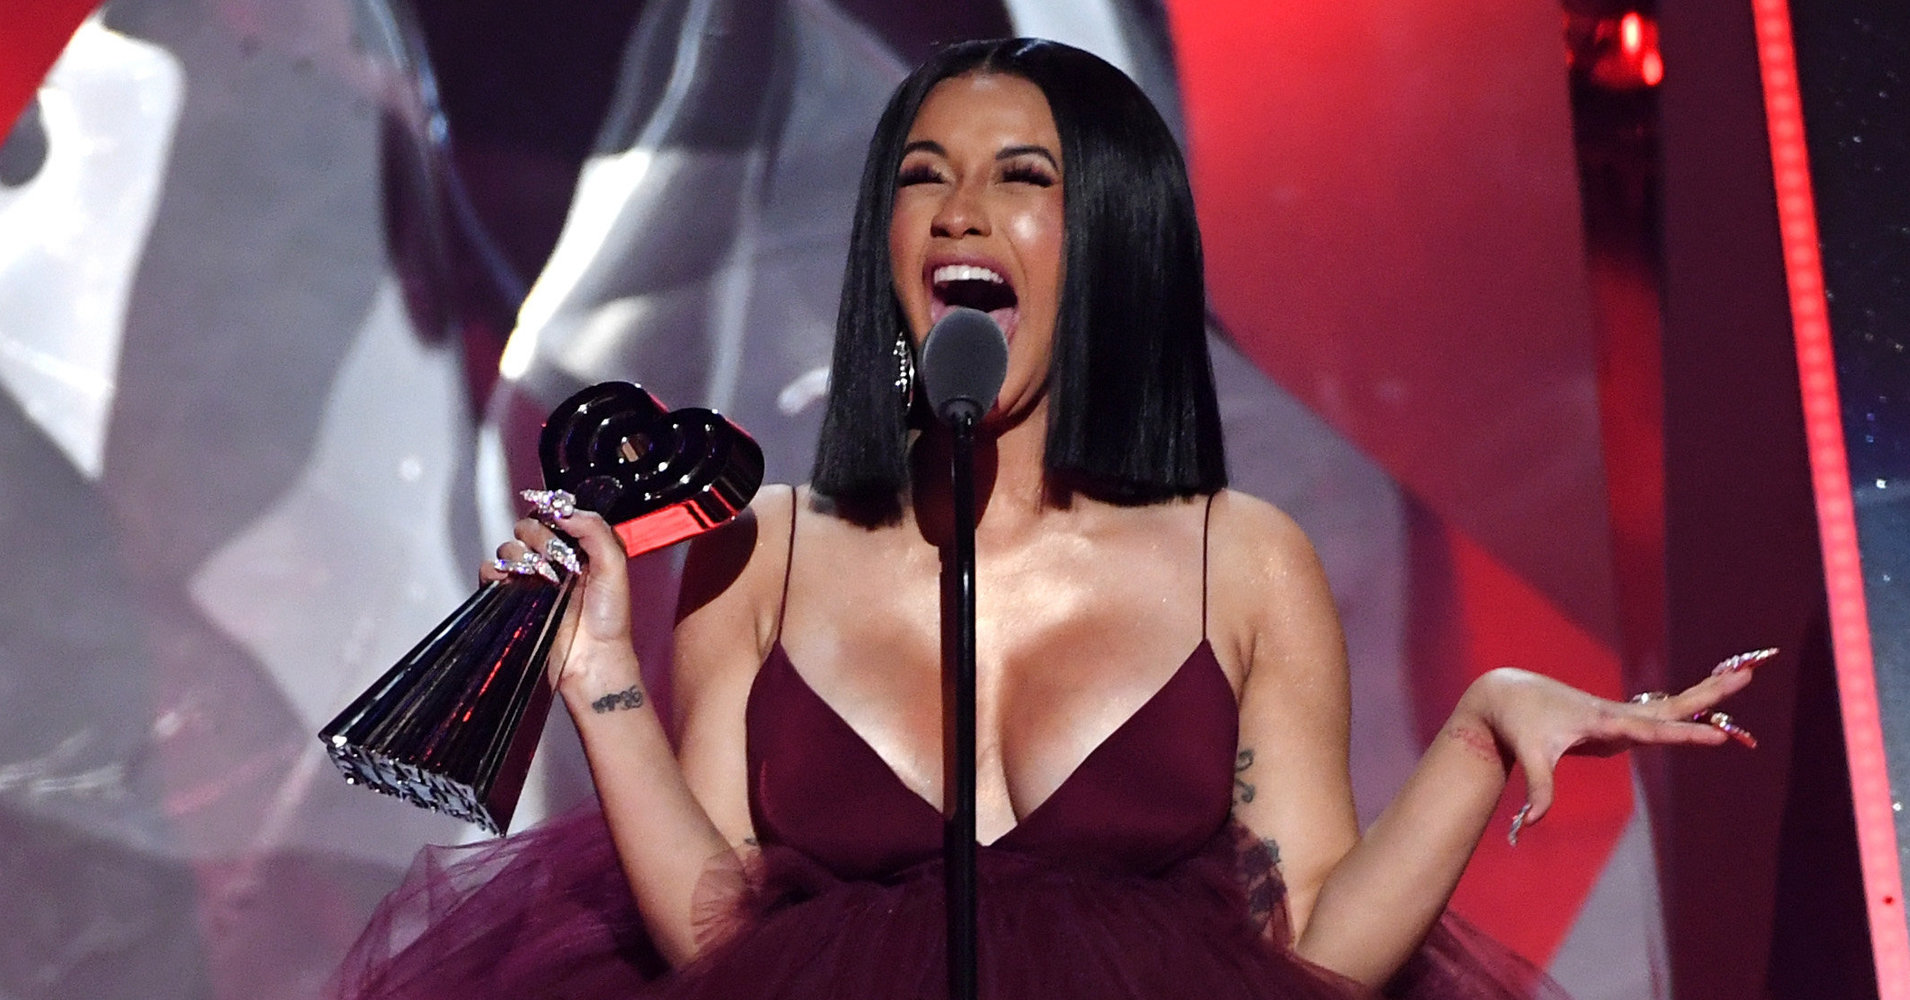 Cardi B to Make First Post-Pregnancy Performance at 2018 Mala Luna Festival